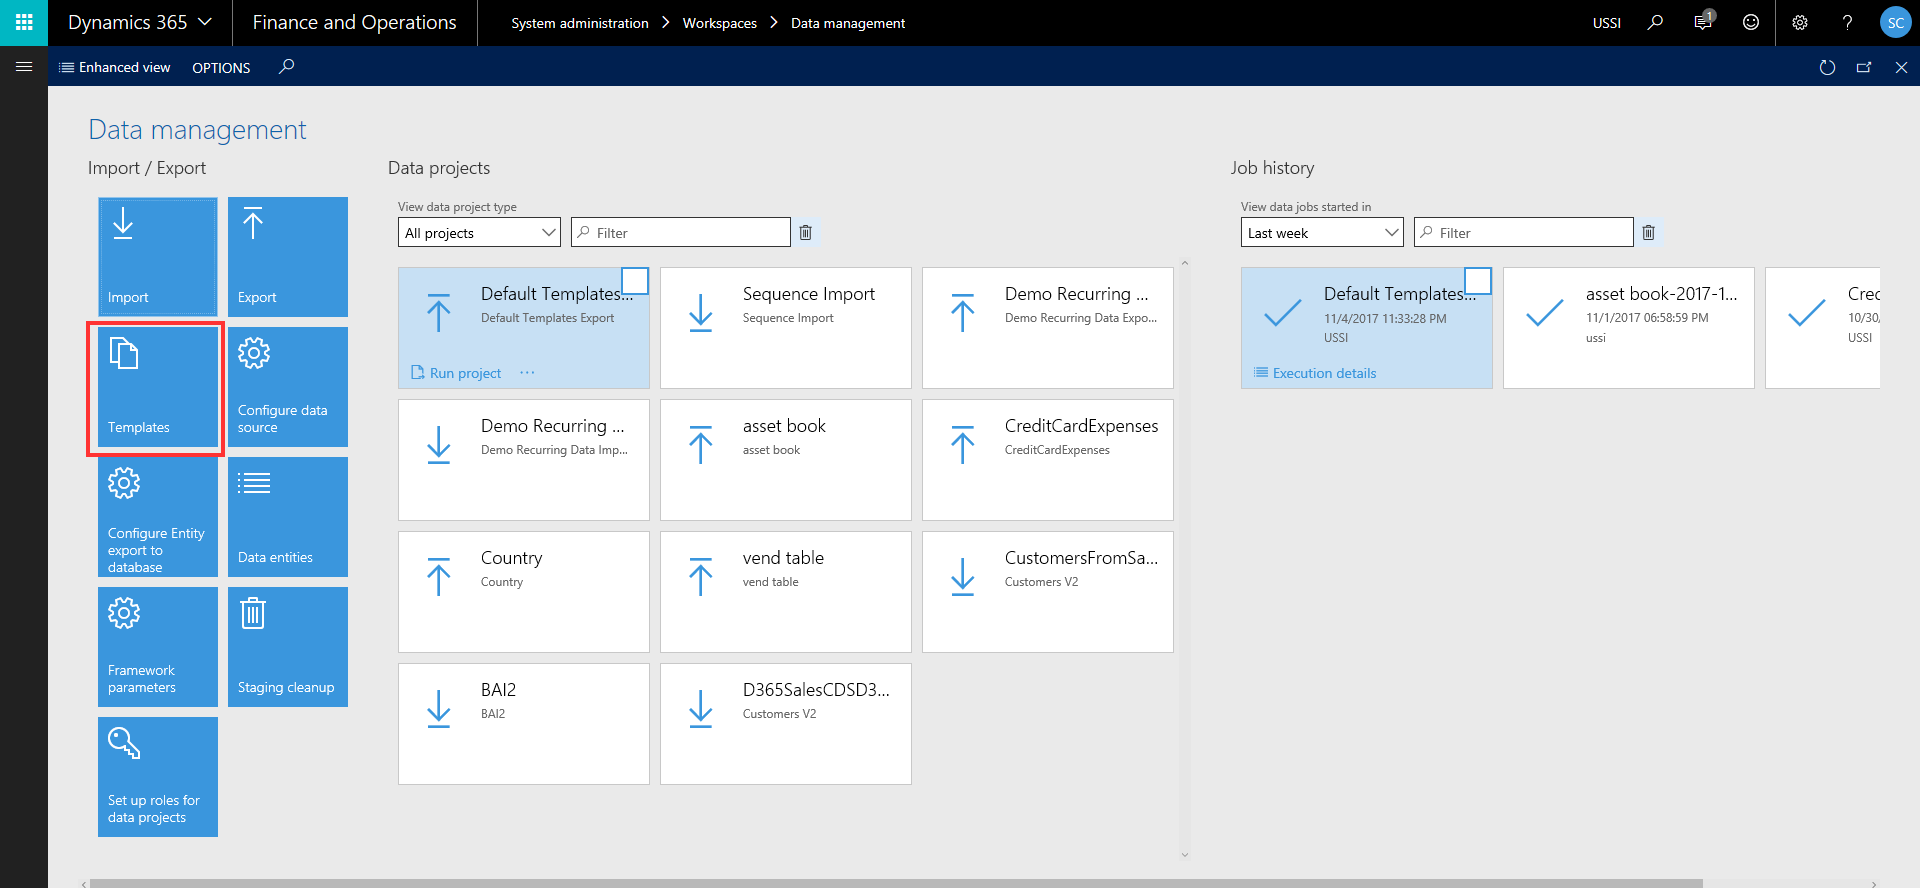 dynamics 365 for operations implementation guide